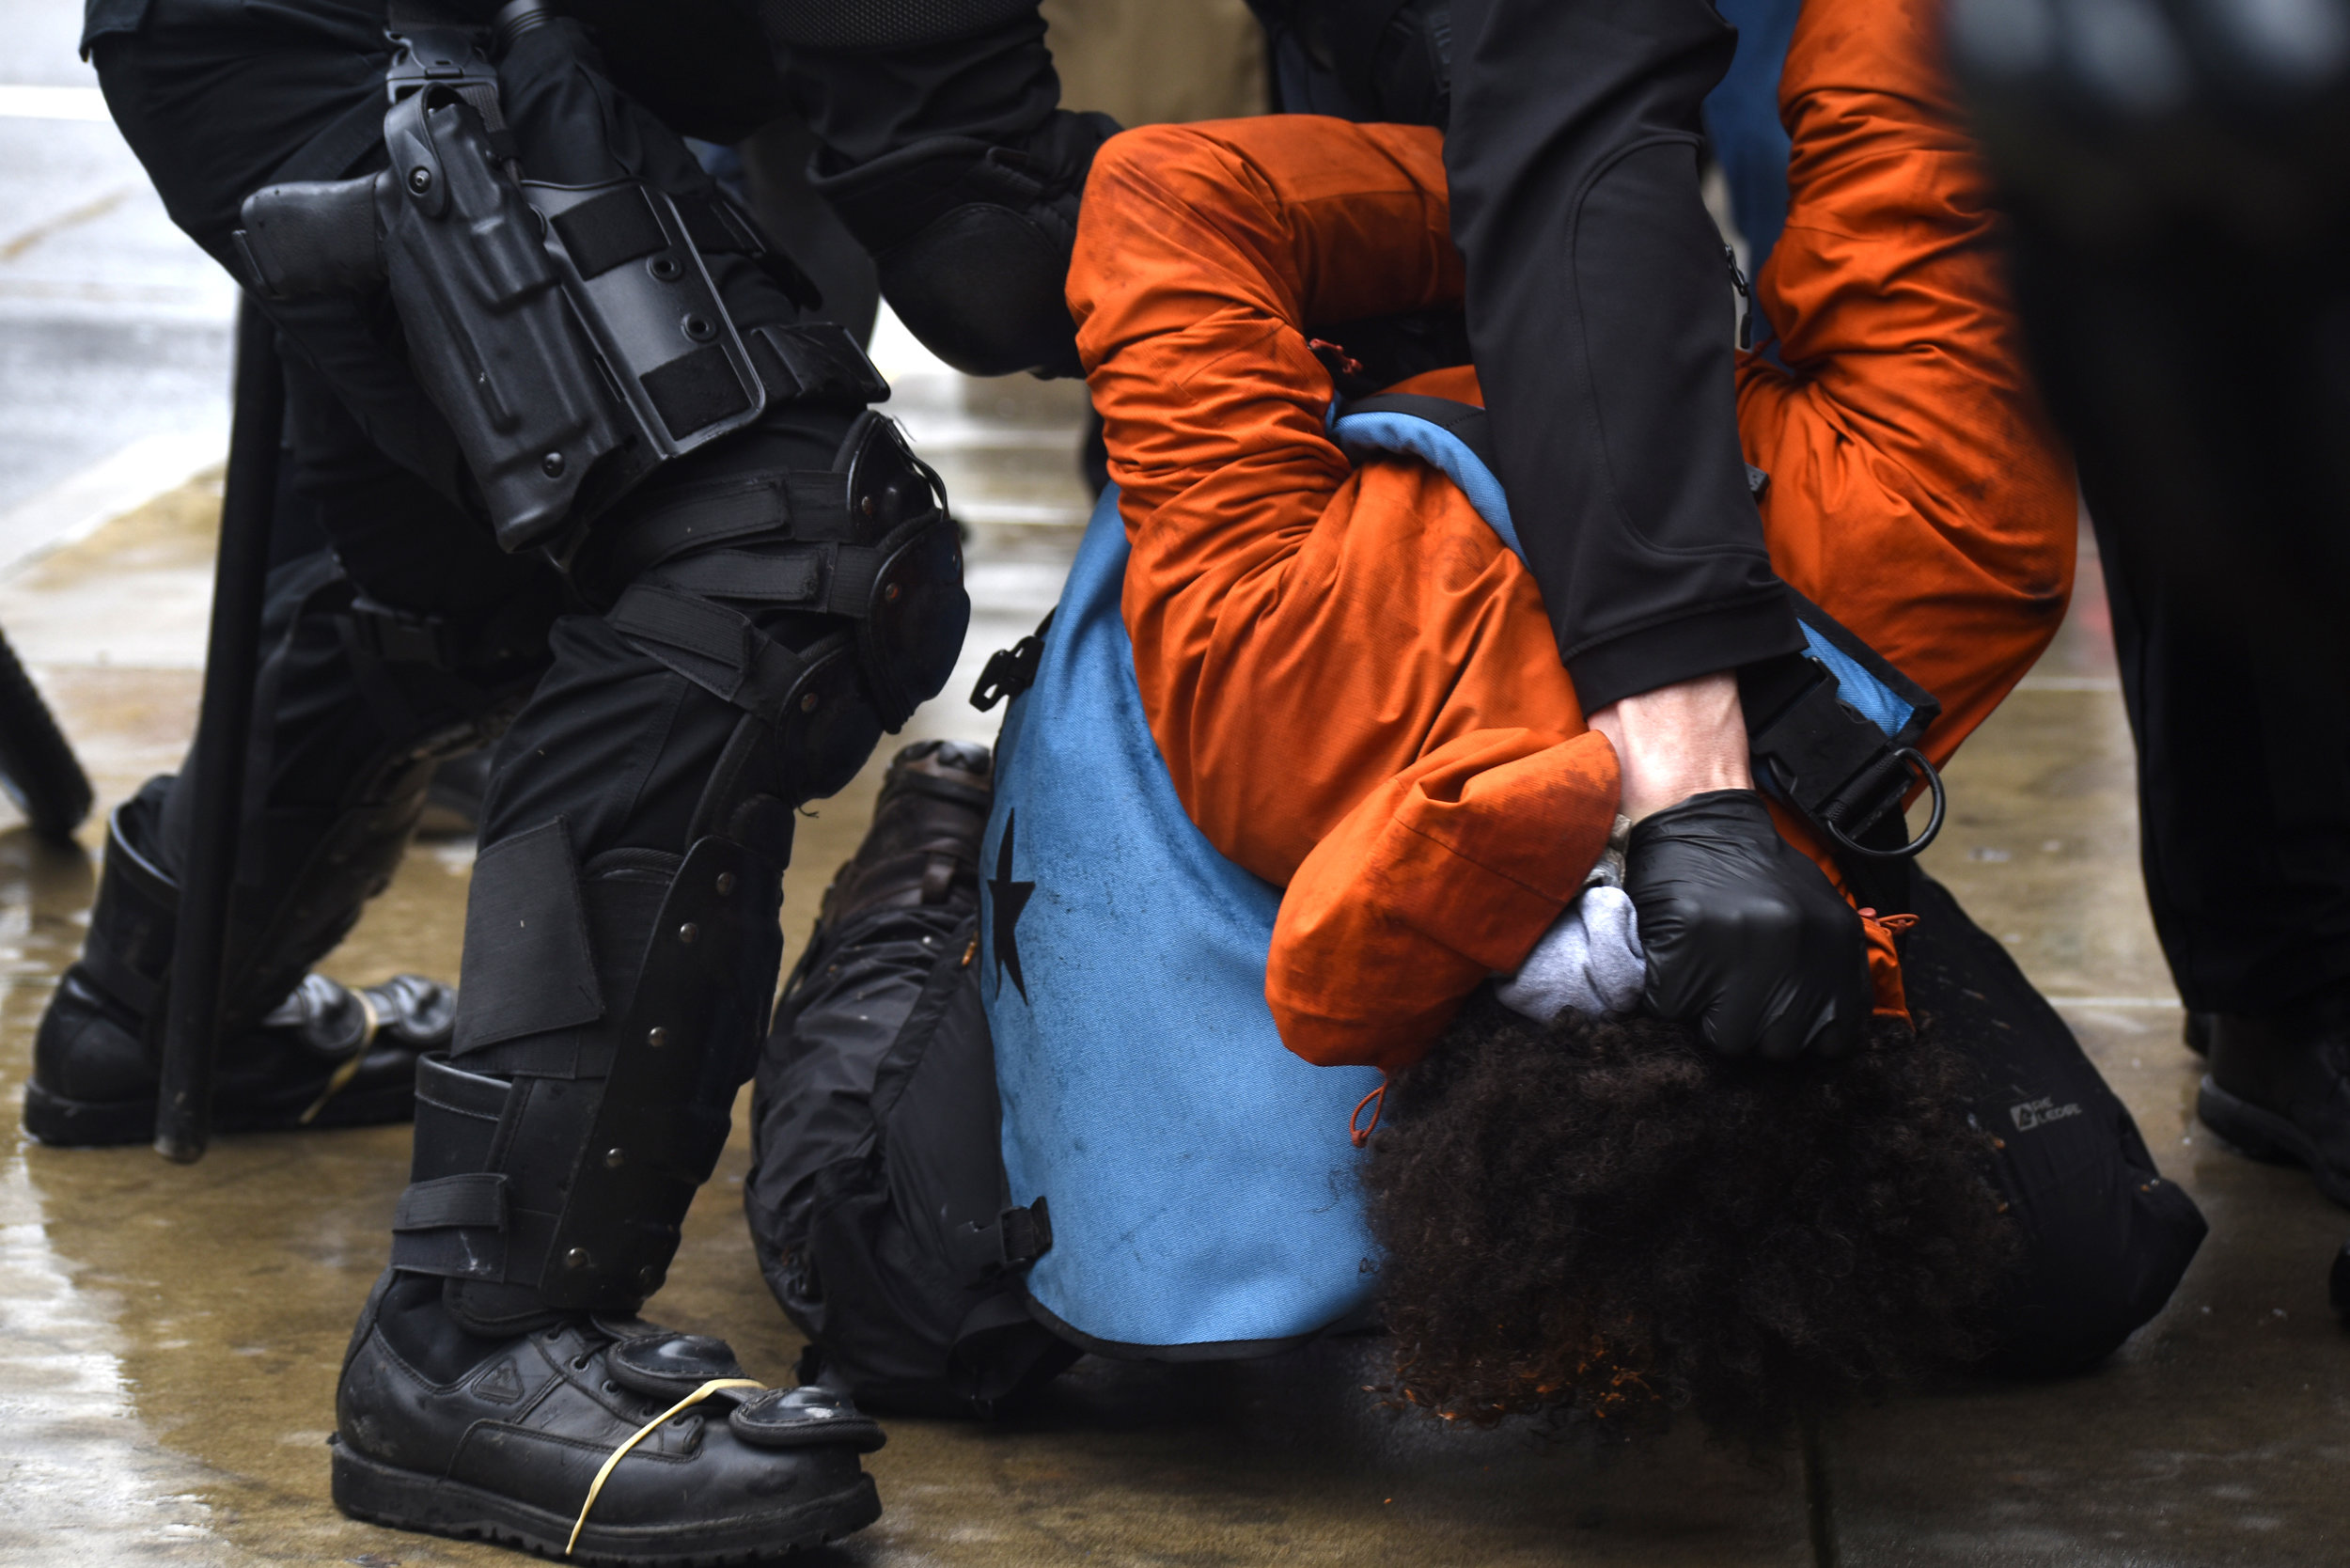 """Portland Mercury - """"Roughed UP: Portland Police Arrest 13 in Crackdown of """"Unpermitted"""" President's Day Protest"""""""